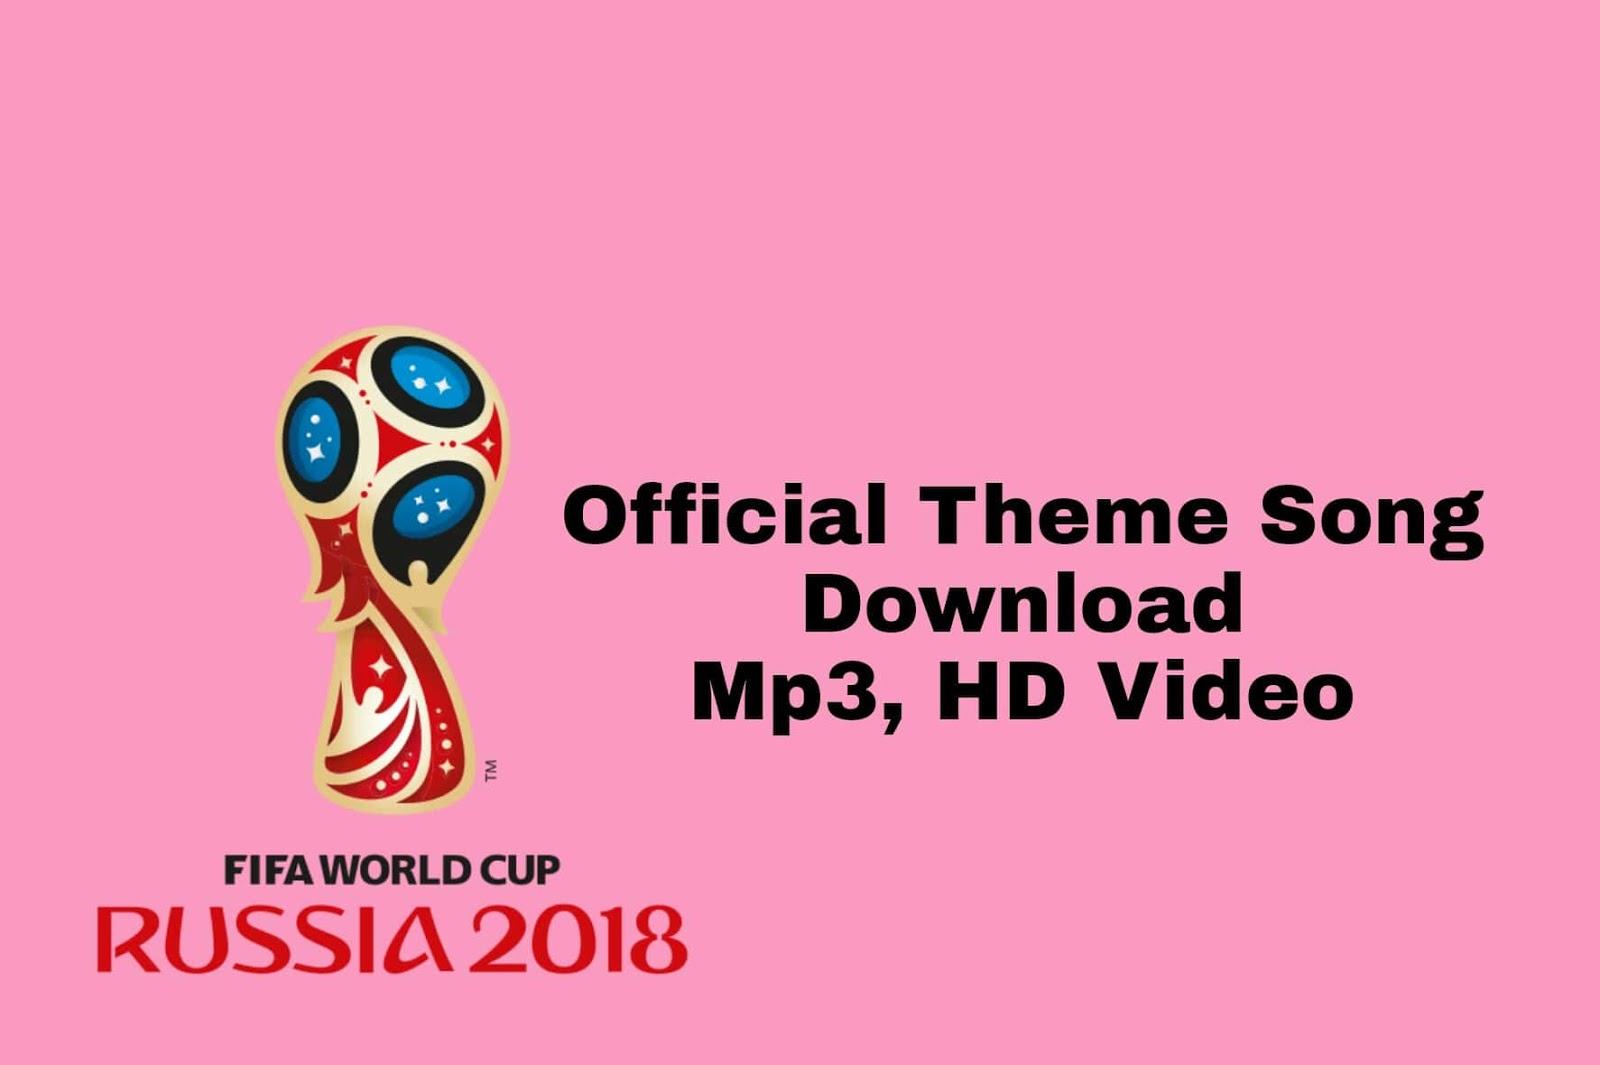 OFFICIAL} World Cup 2018 Theme Song Download Mp3, HD Video